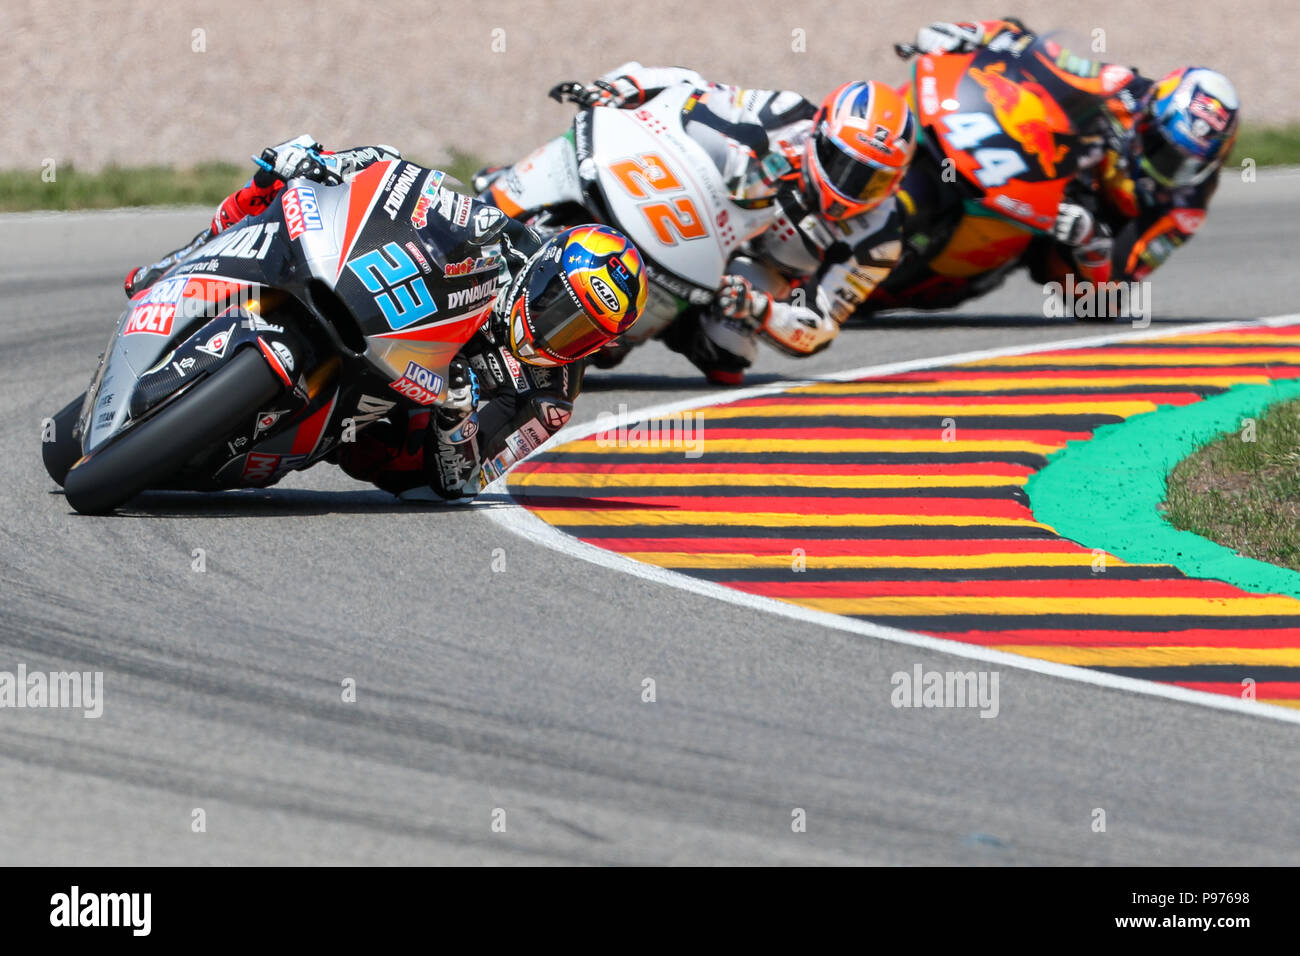 Hohenstein-Ernstthal, Germany. 15th July, 2018. German motorcycle Grand Prix, Moto2 at the Sachsenring: Marcel Schroetter (Germany, Dynavolt Intact GP) in action. Credit: Jan Woitas/dpa-Zentralbild/dpa/Alamy Live News - Stock Image